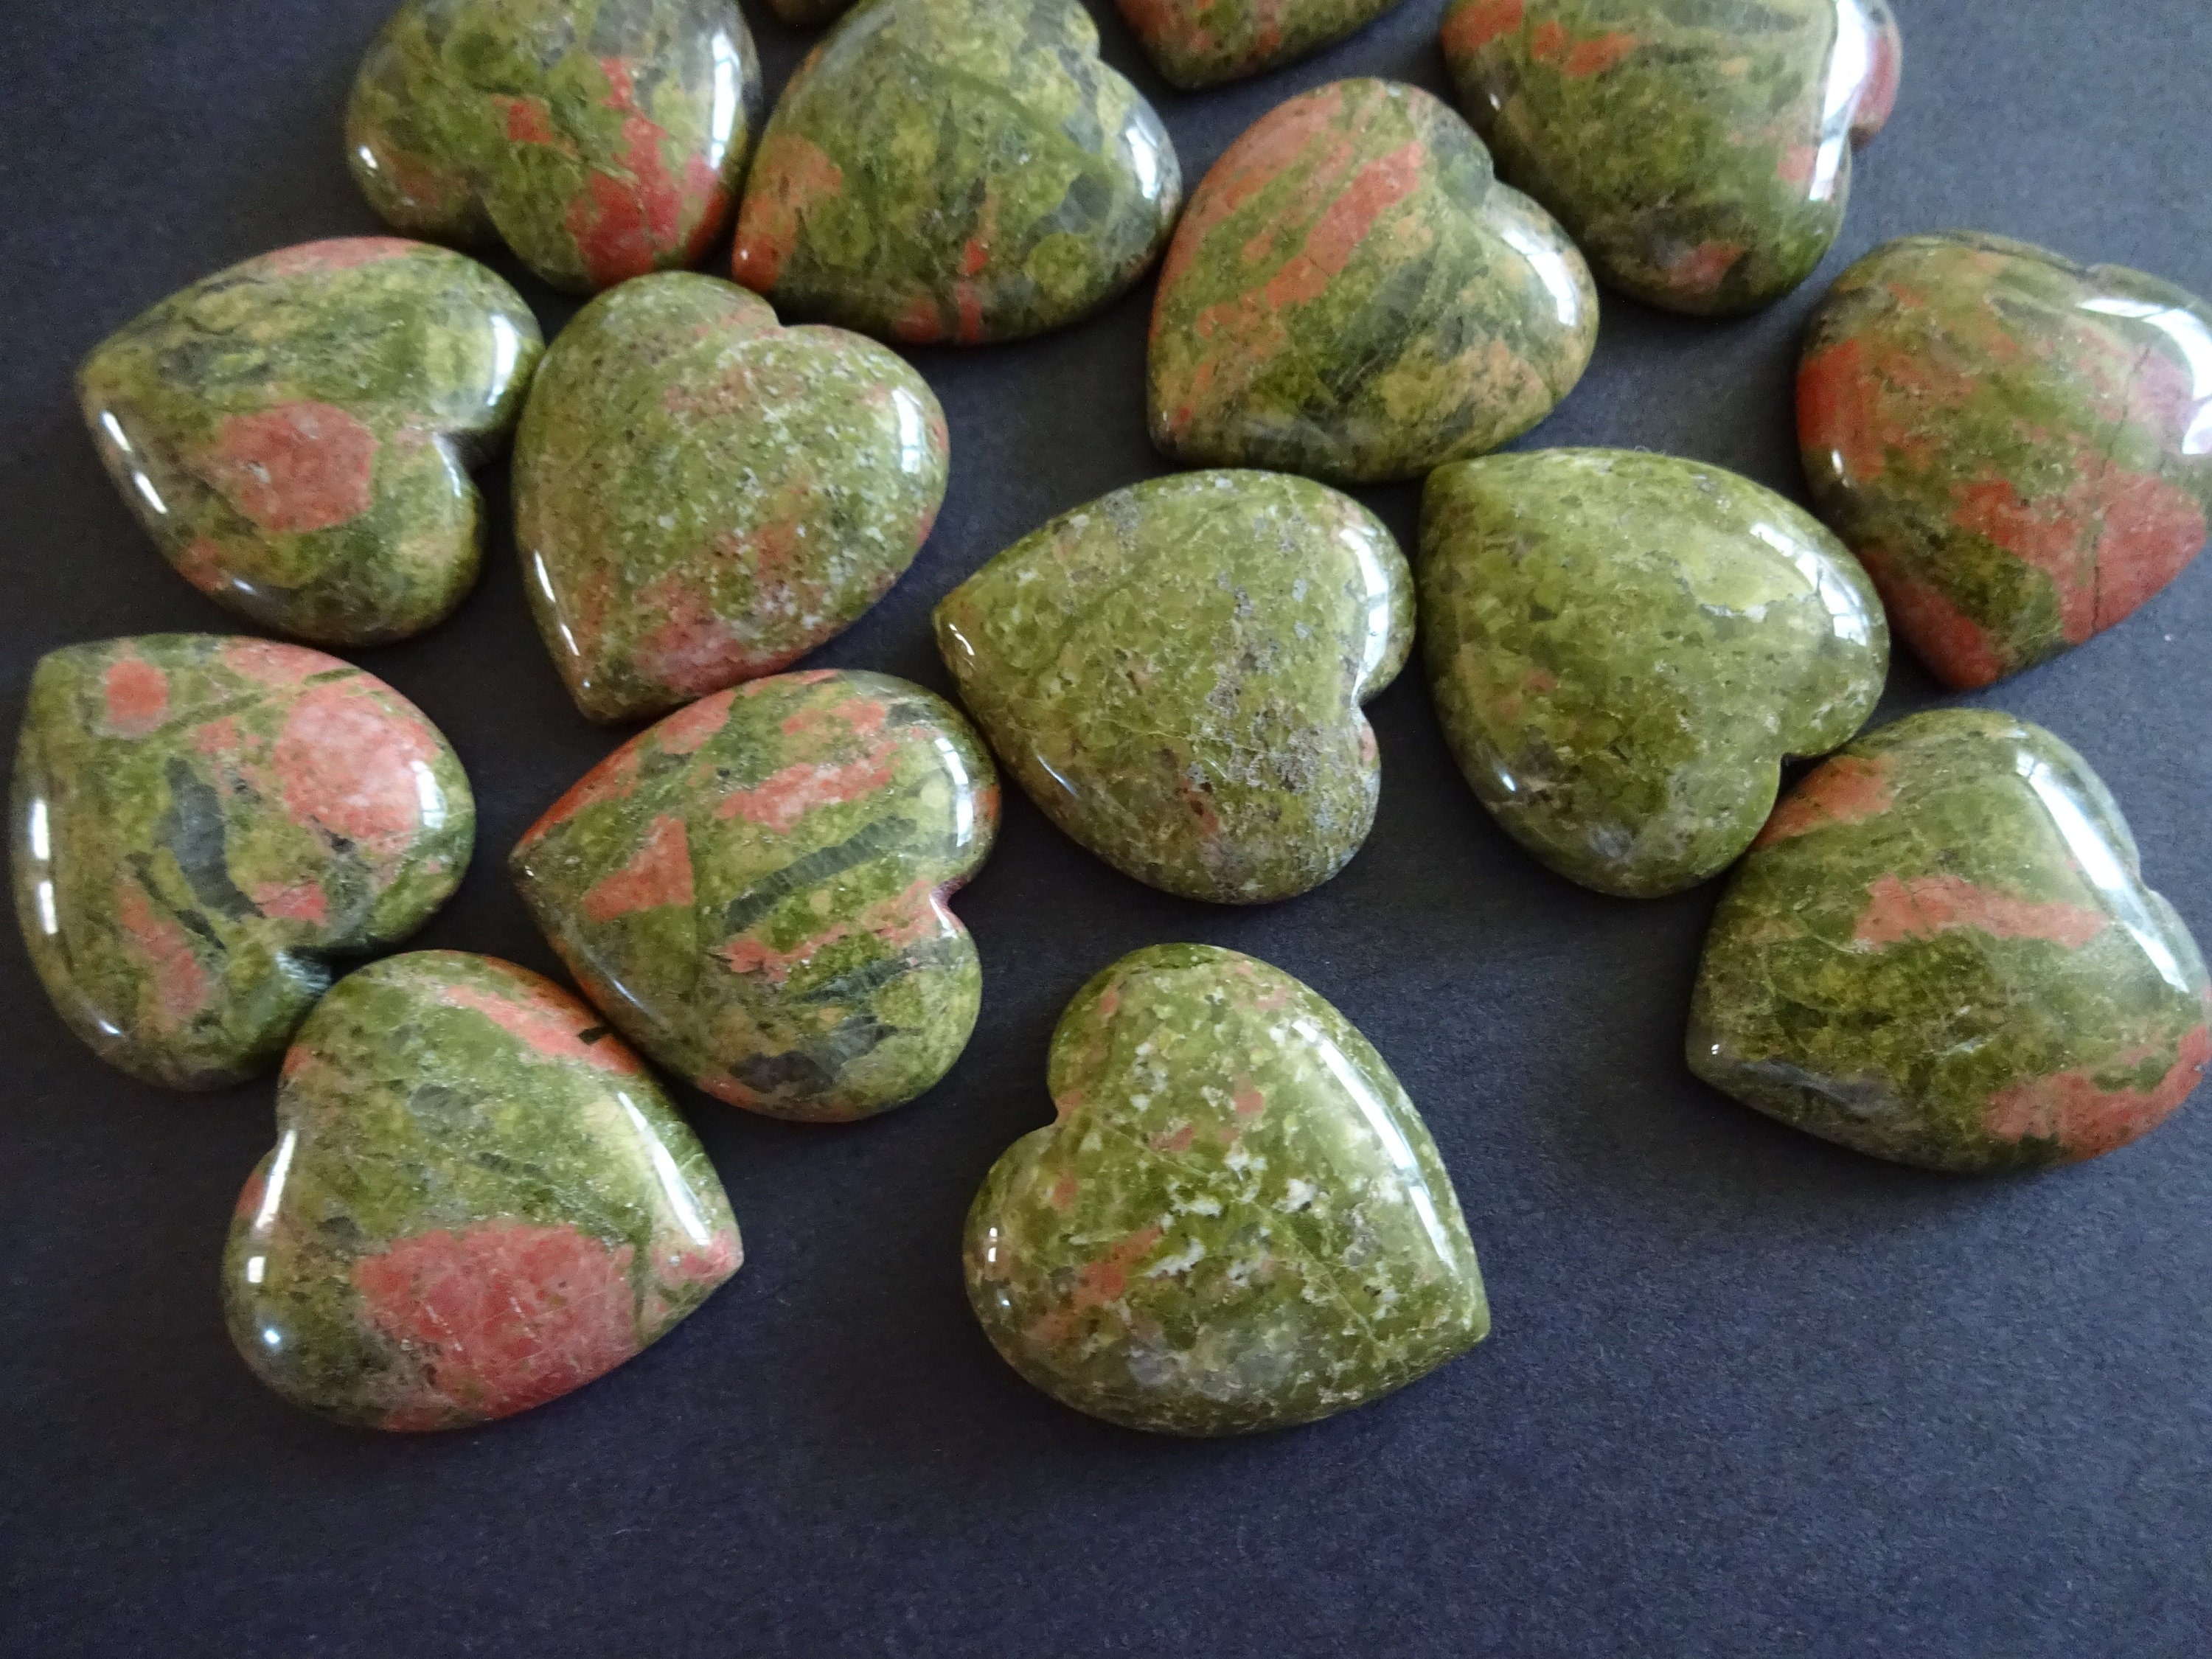 42X26X7 mm JMK-7527 Amazing Top Grade Quality 100/% Natural Unakite Oval Shape Cabochon Loose Gemstone For Making Jewelry 62 Ct